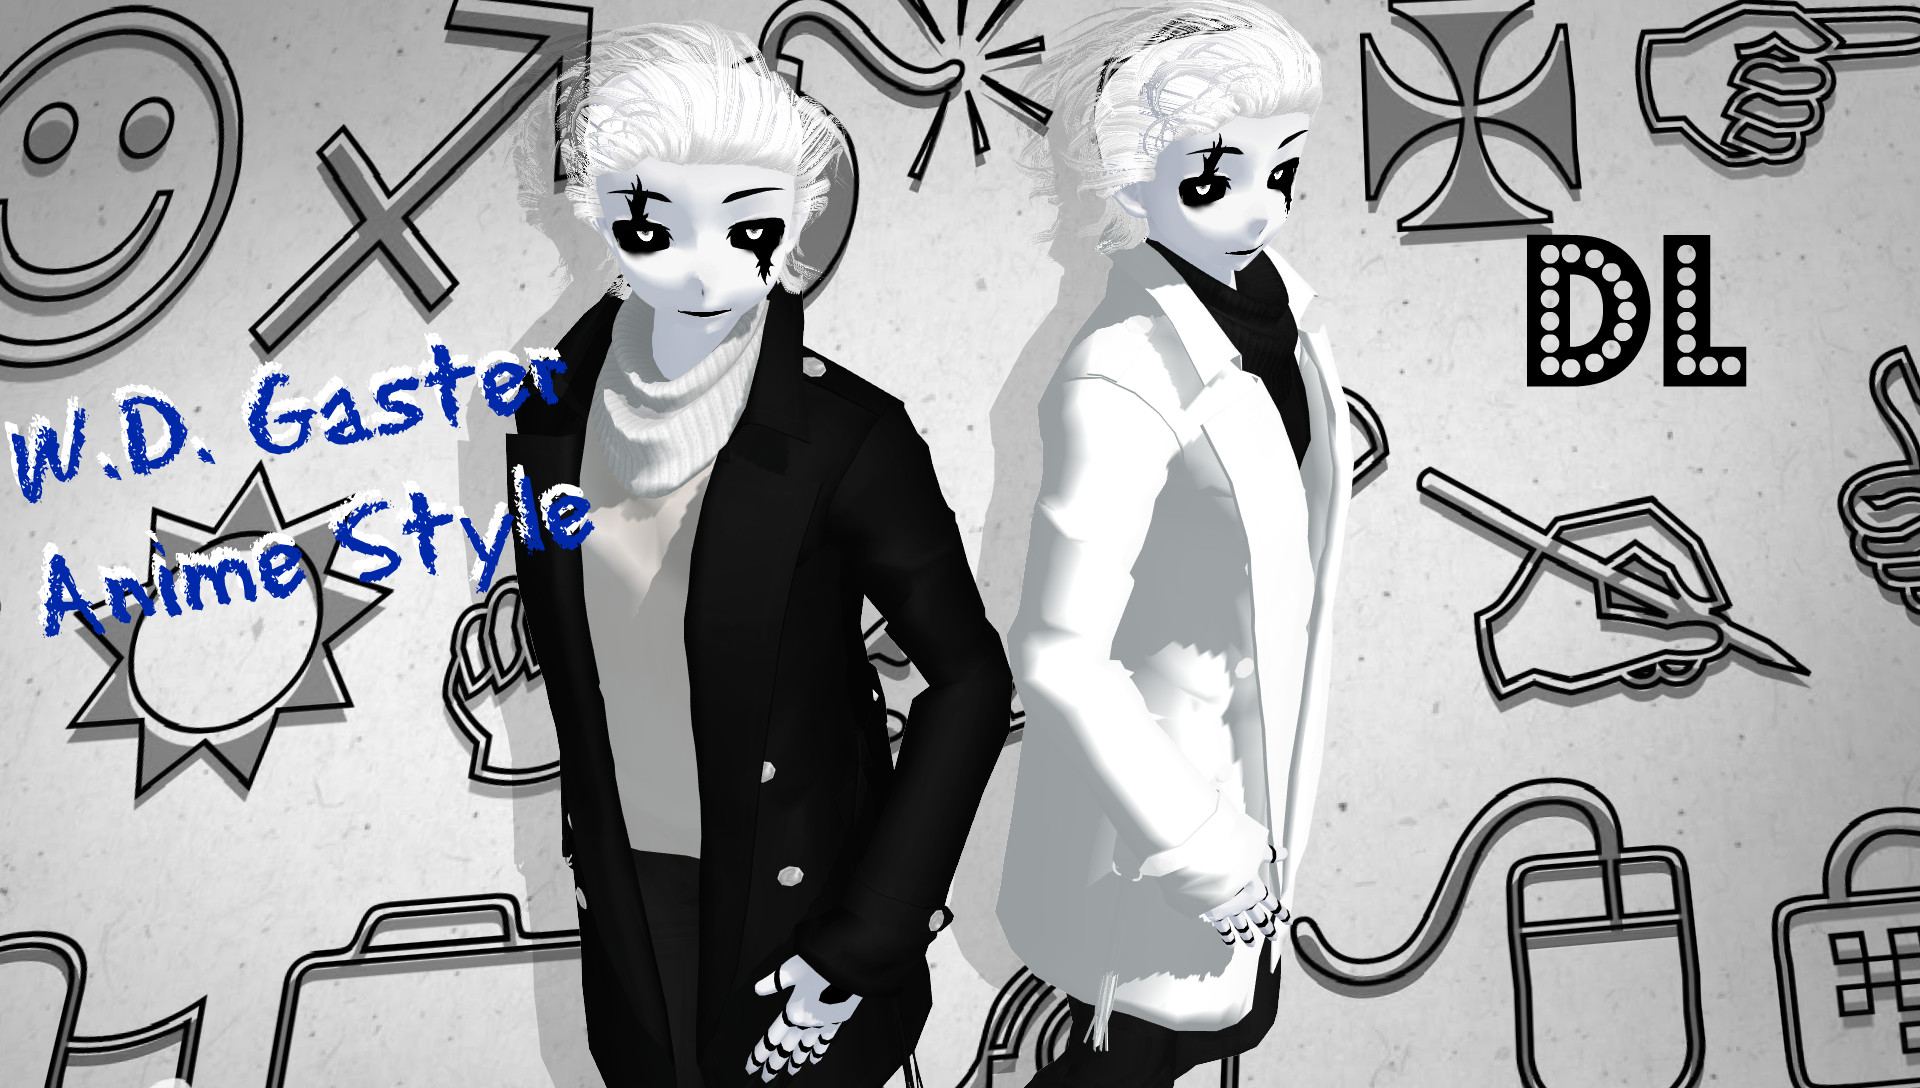 … UNDERTALE MMD W.D. Gaster Anime Style DL by Foxvinny-art